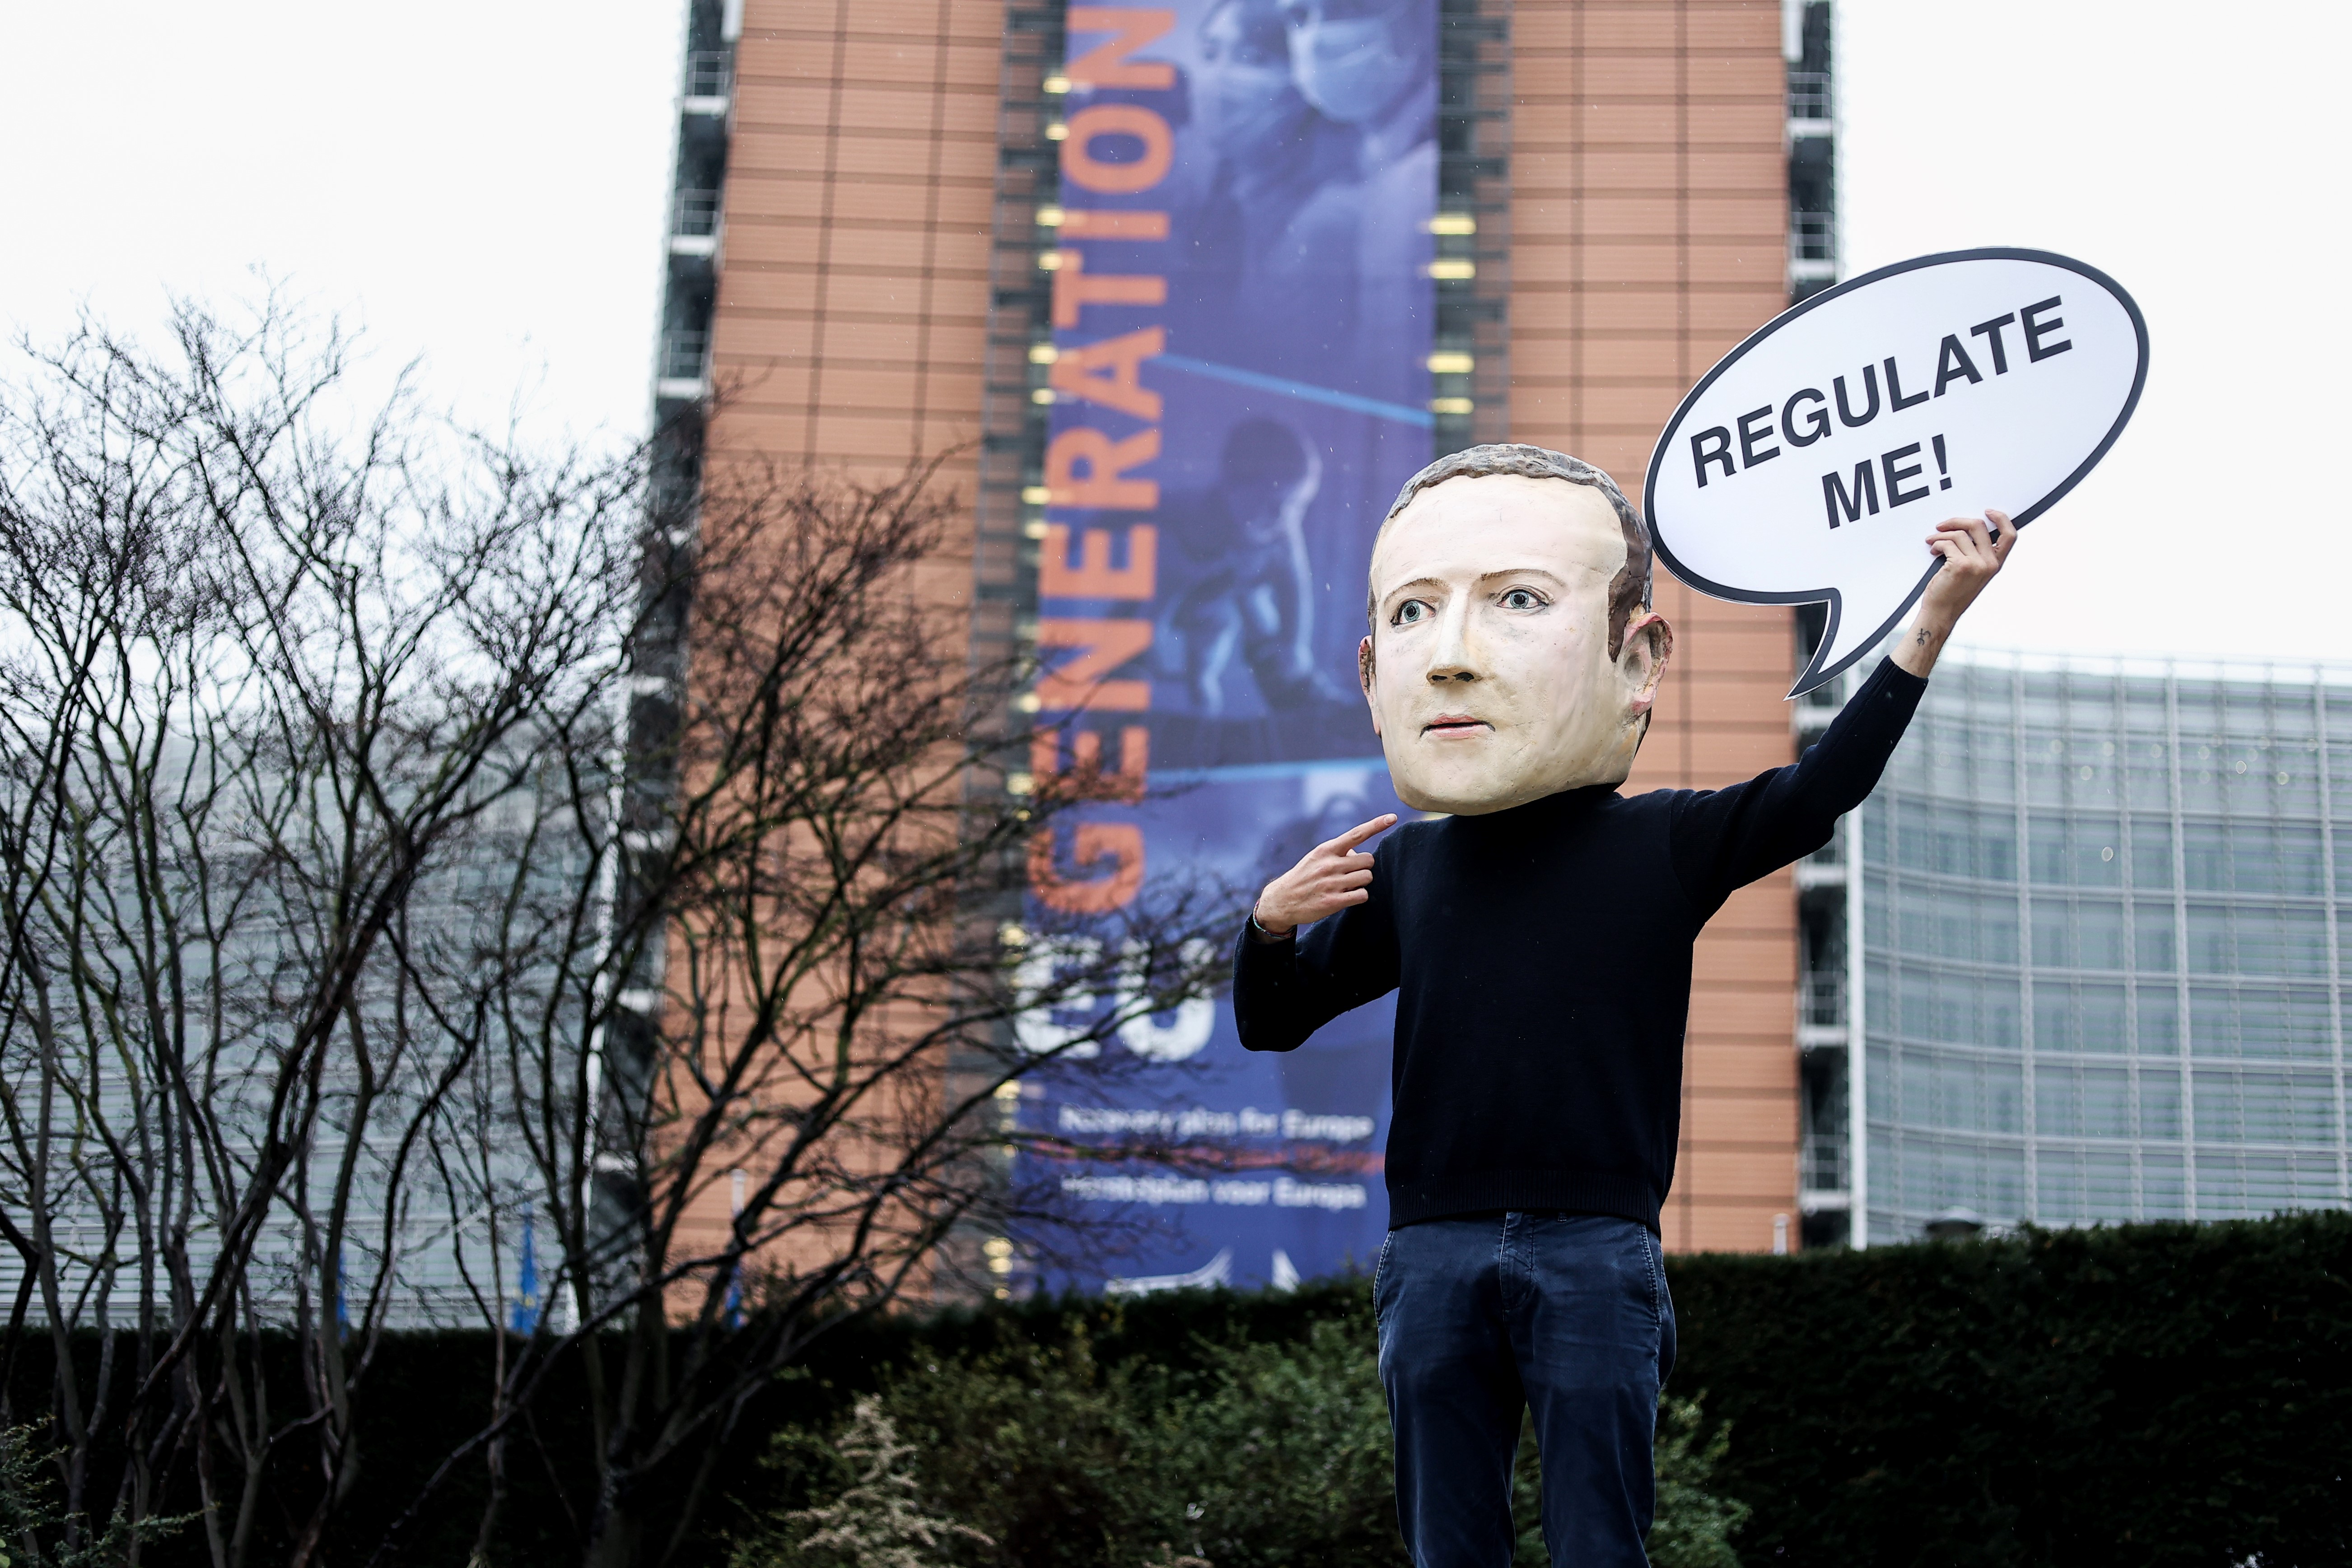 """An activist of environmental NGO Avaaz wearing a mask depicting Facebook CEO Mark Zuckerberg holds a banner reading """"Regulate me"""" during an action marking the release of the Digital Services Act, outside the European Commission building in Brussels on December 15, 2020."""